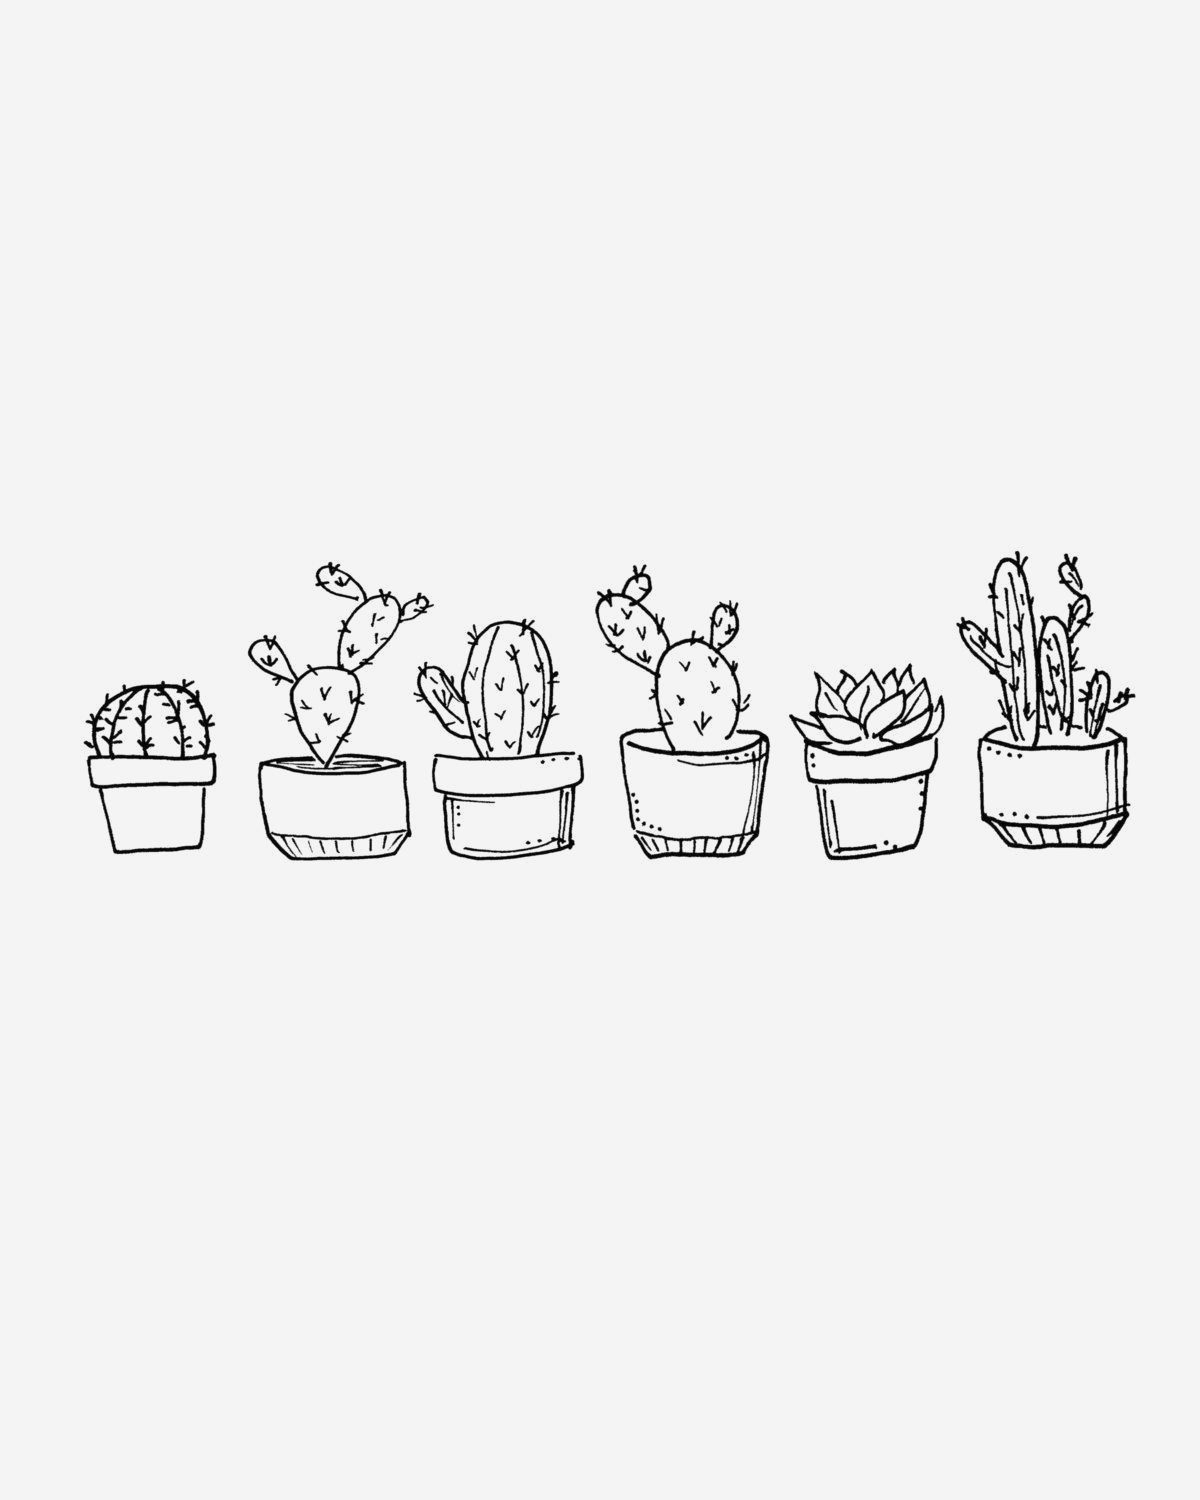 Coloriage Cactus A Imprimer Awesome Cactus Imprimable Of Coloriage Cactus A Imprimer